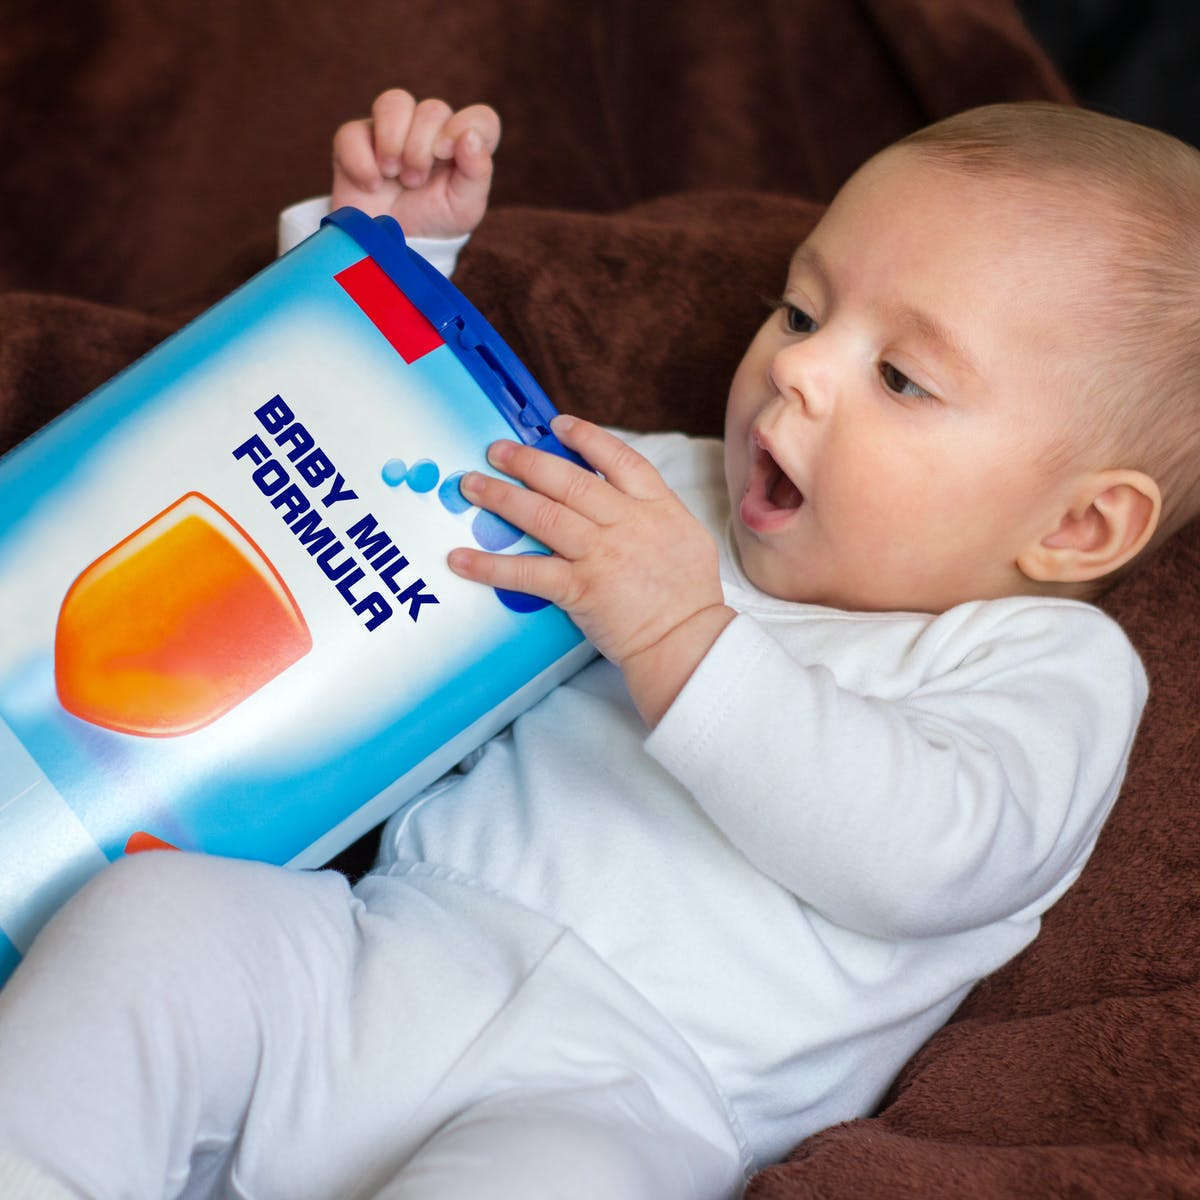 If you're feeding with formula, here's what you can do to promote your  baby's healthy growth